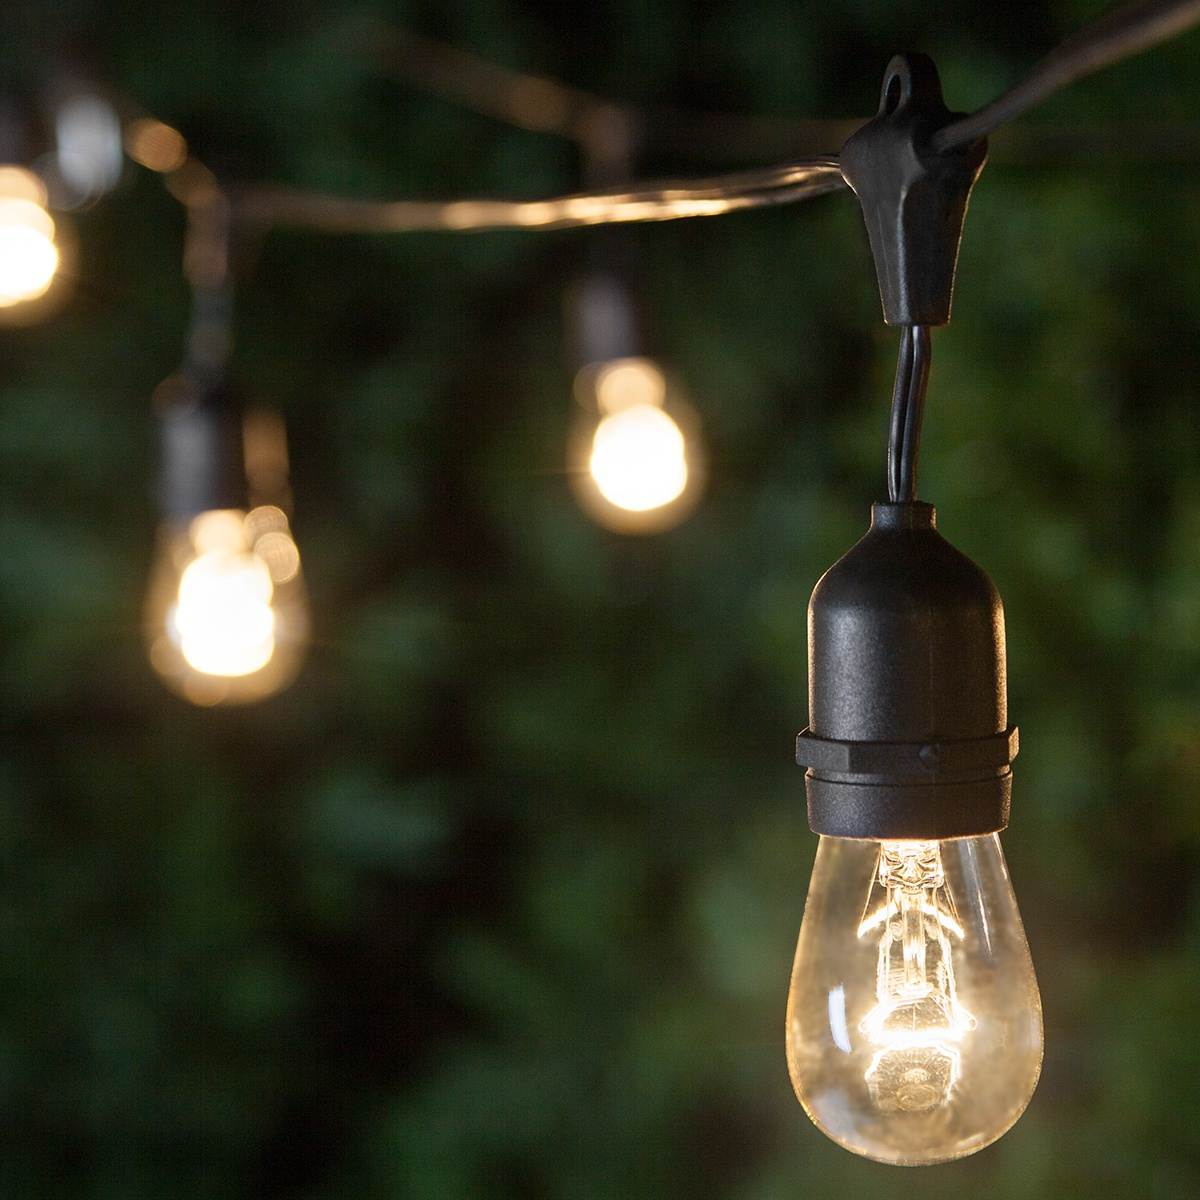 Patio Lights - Commercial Clear Patio String Lights, 24 S14 E27 Bulbs Black Wire